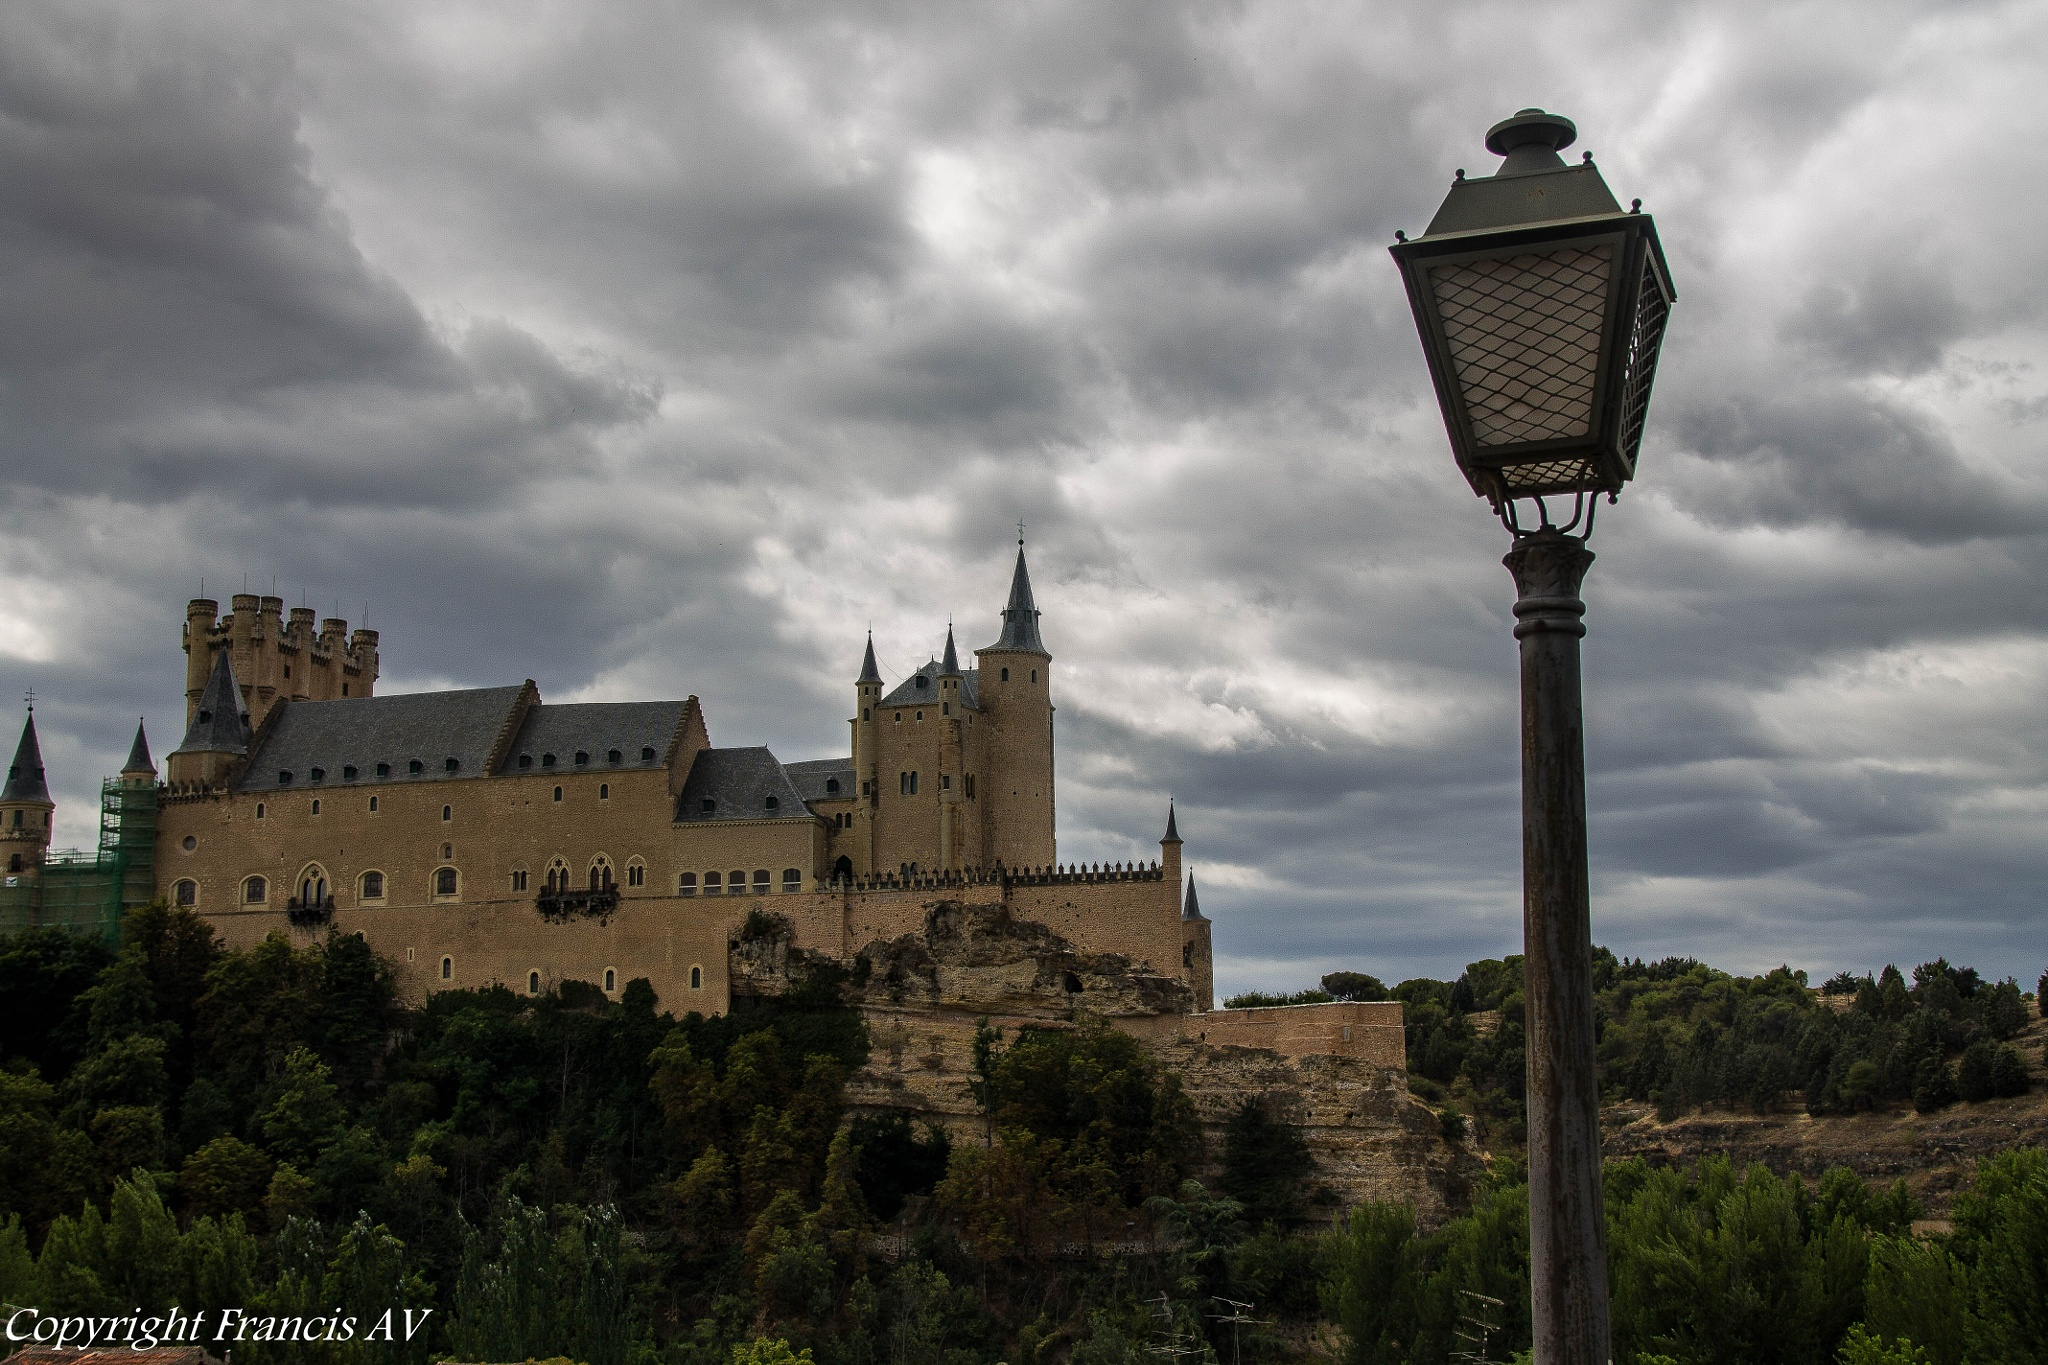 Alcazar of Segovia, Spain  by Francis AV